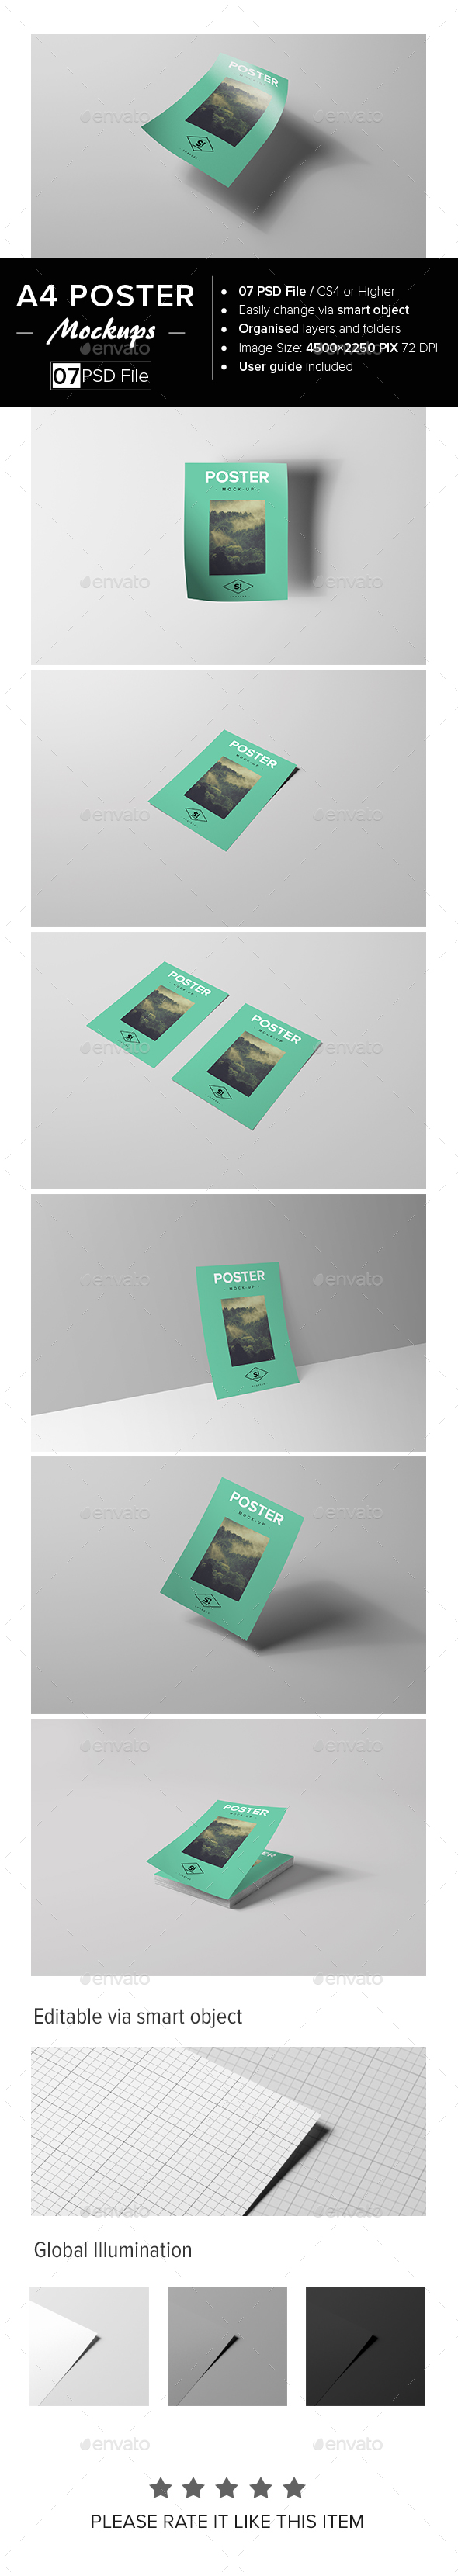 A4 Poster Mock-Up - Posters Print